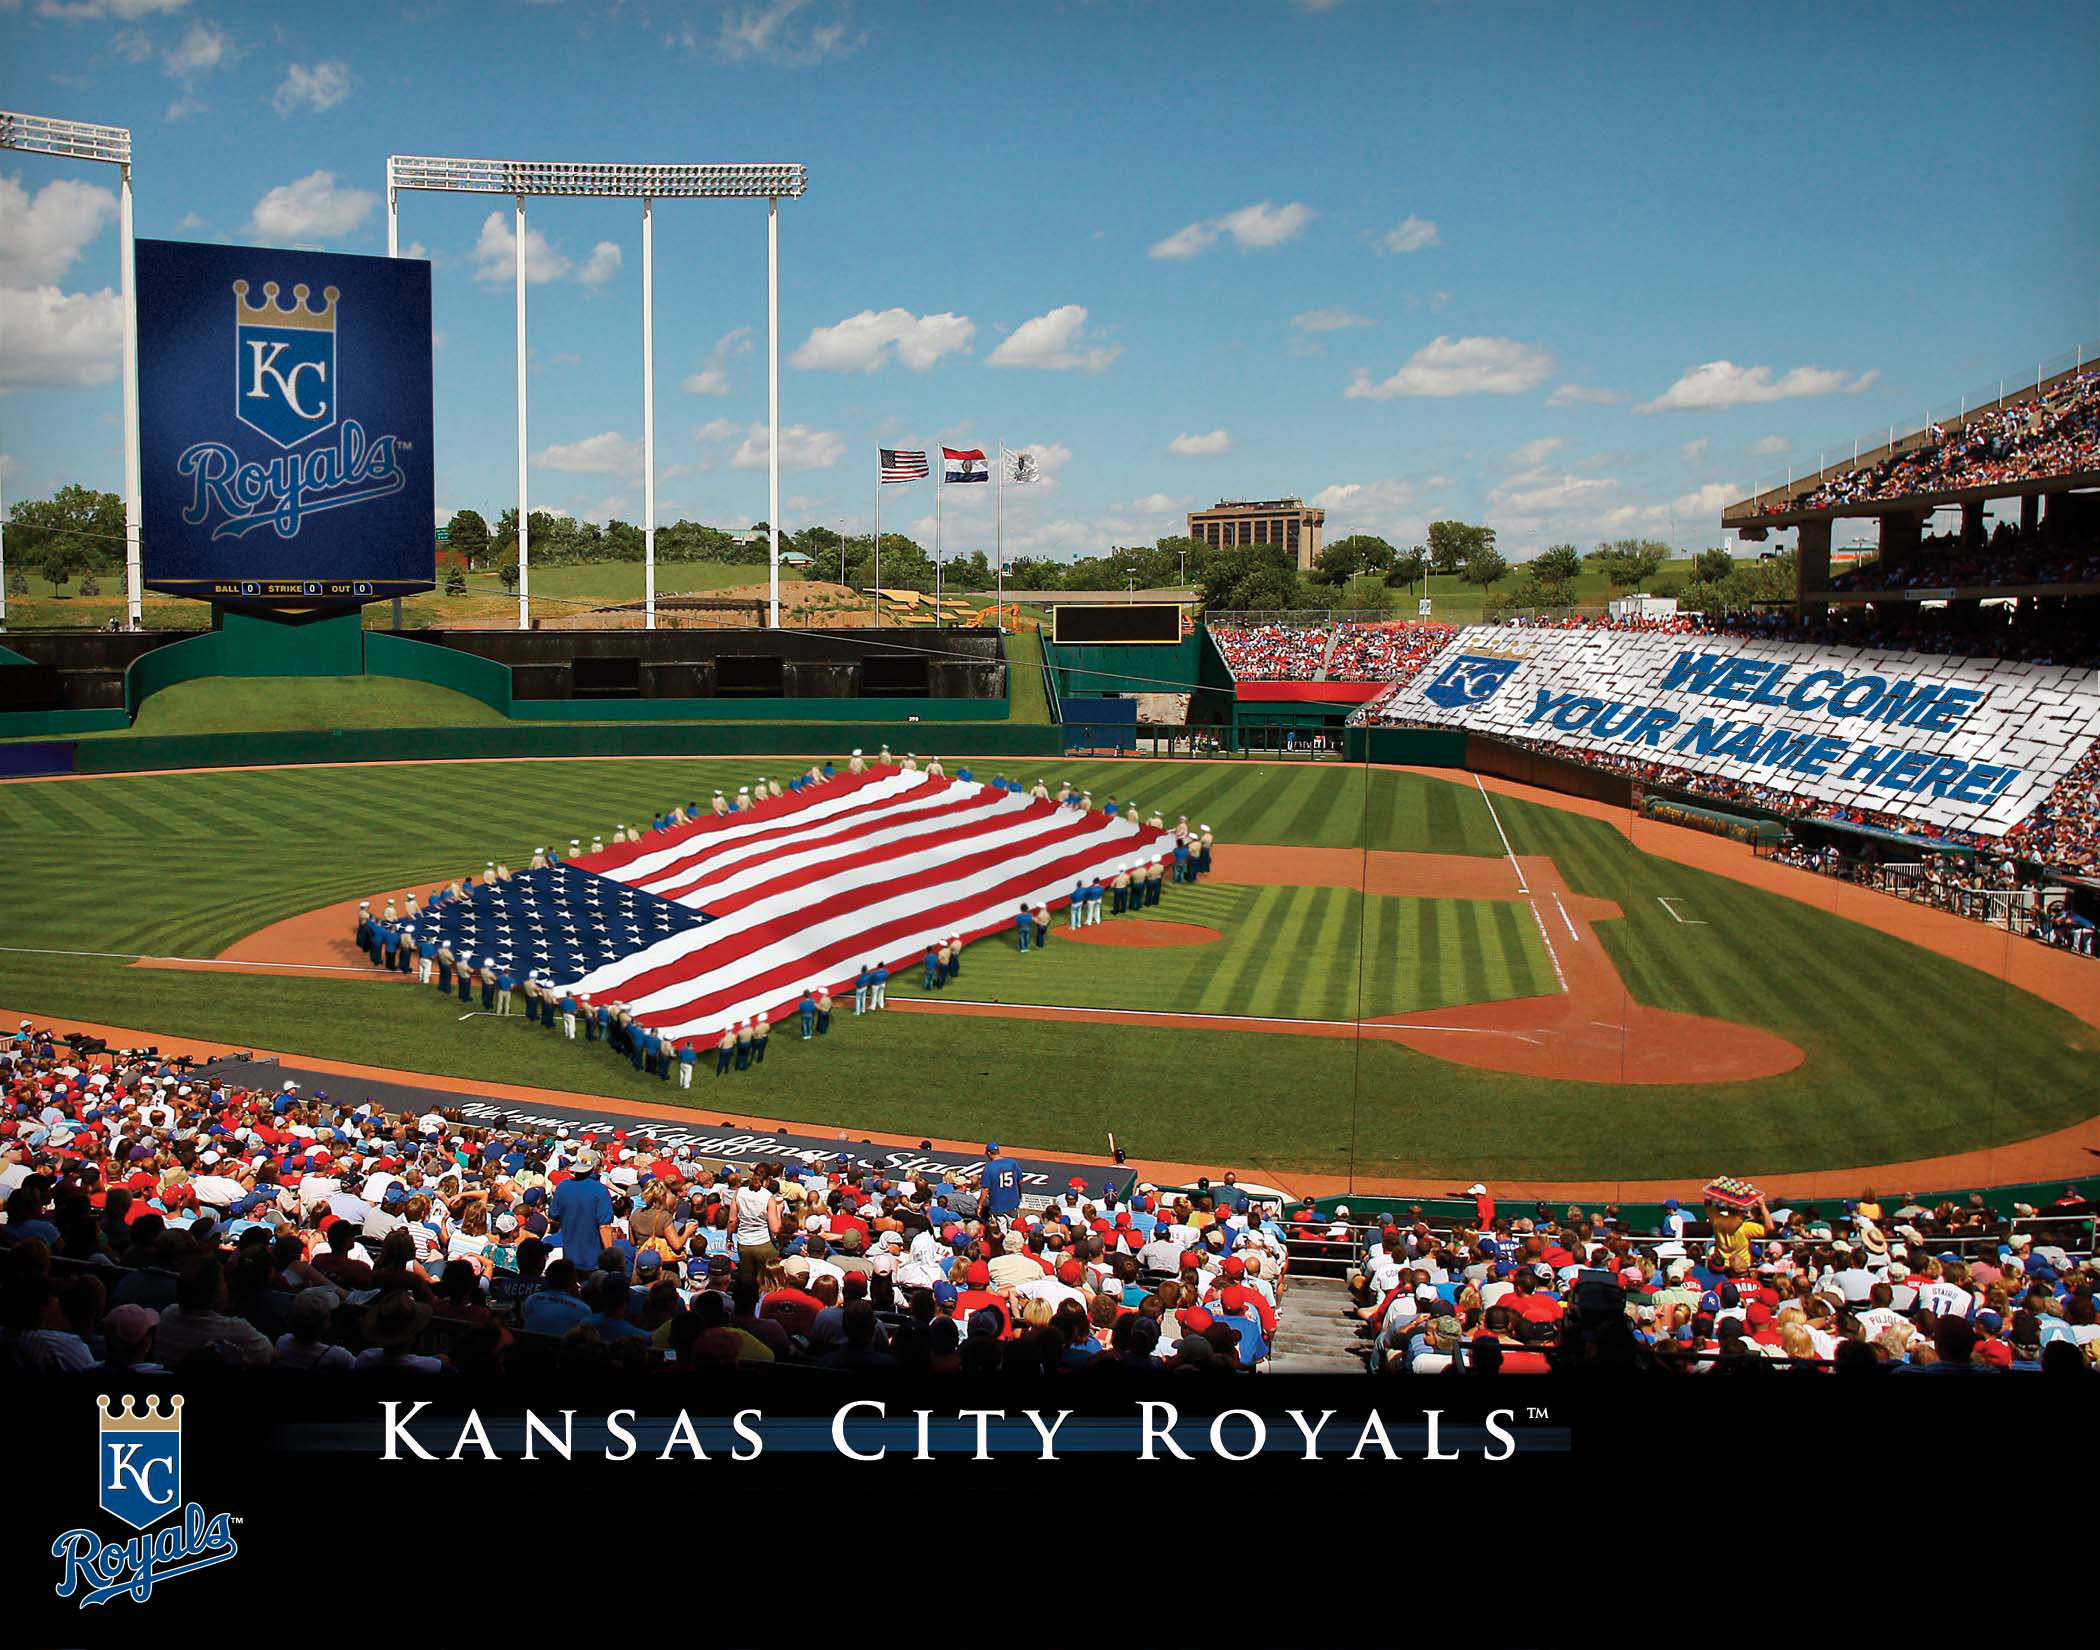 Royals Desktop Wallpaper City Royals Mlb Baseball